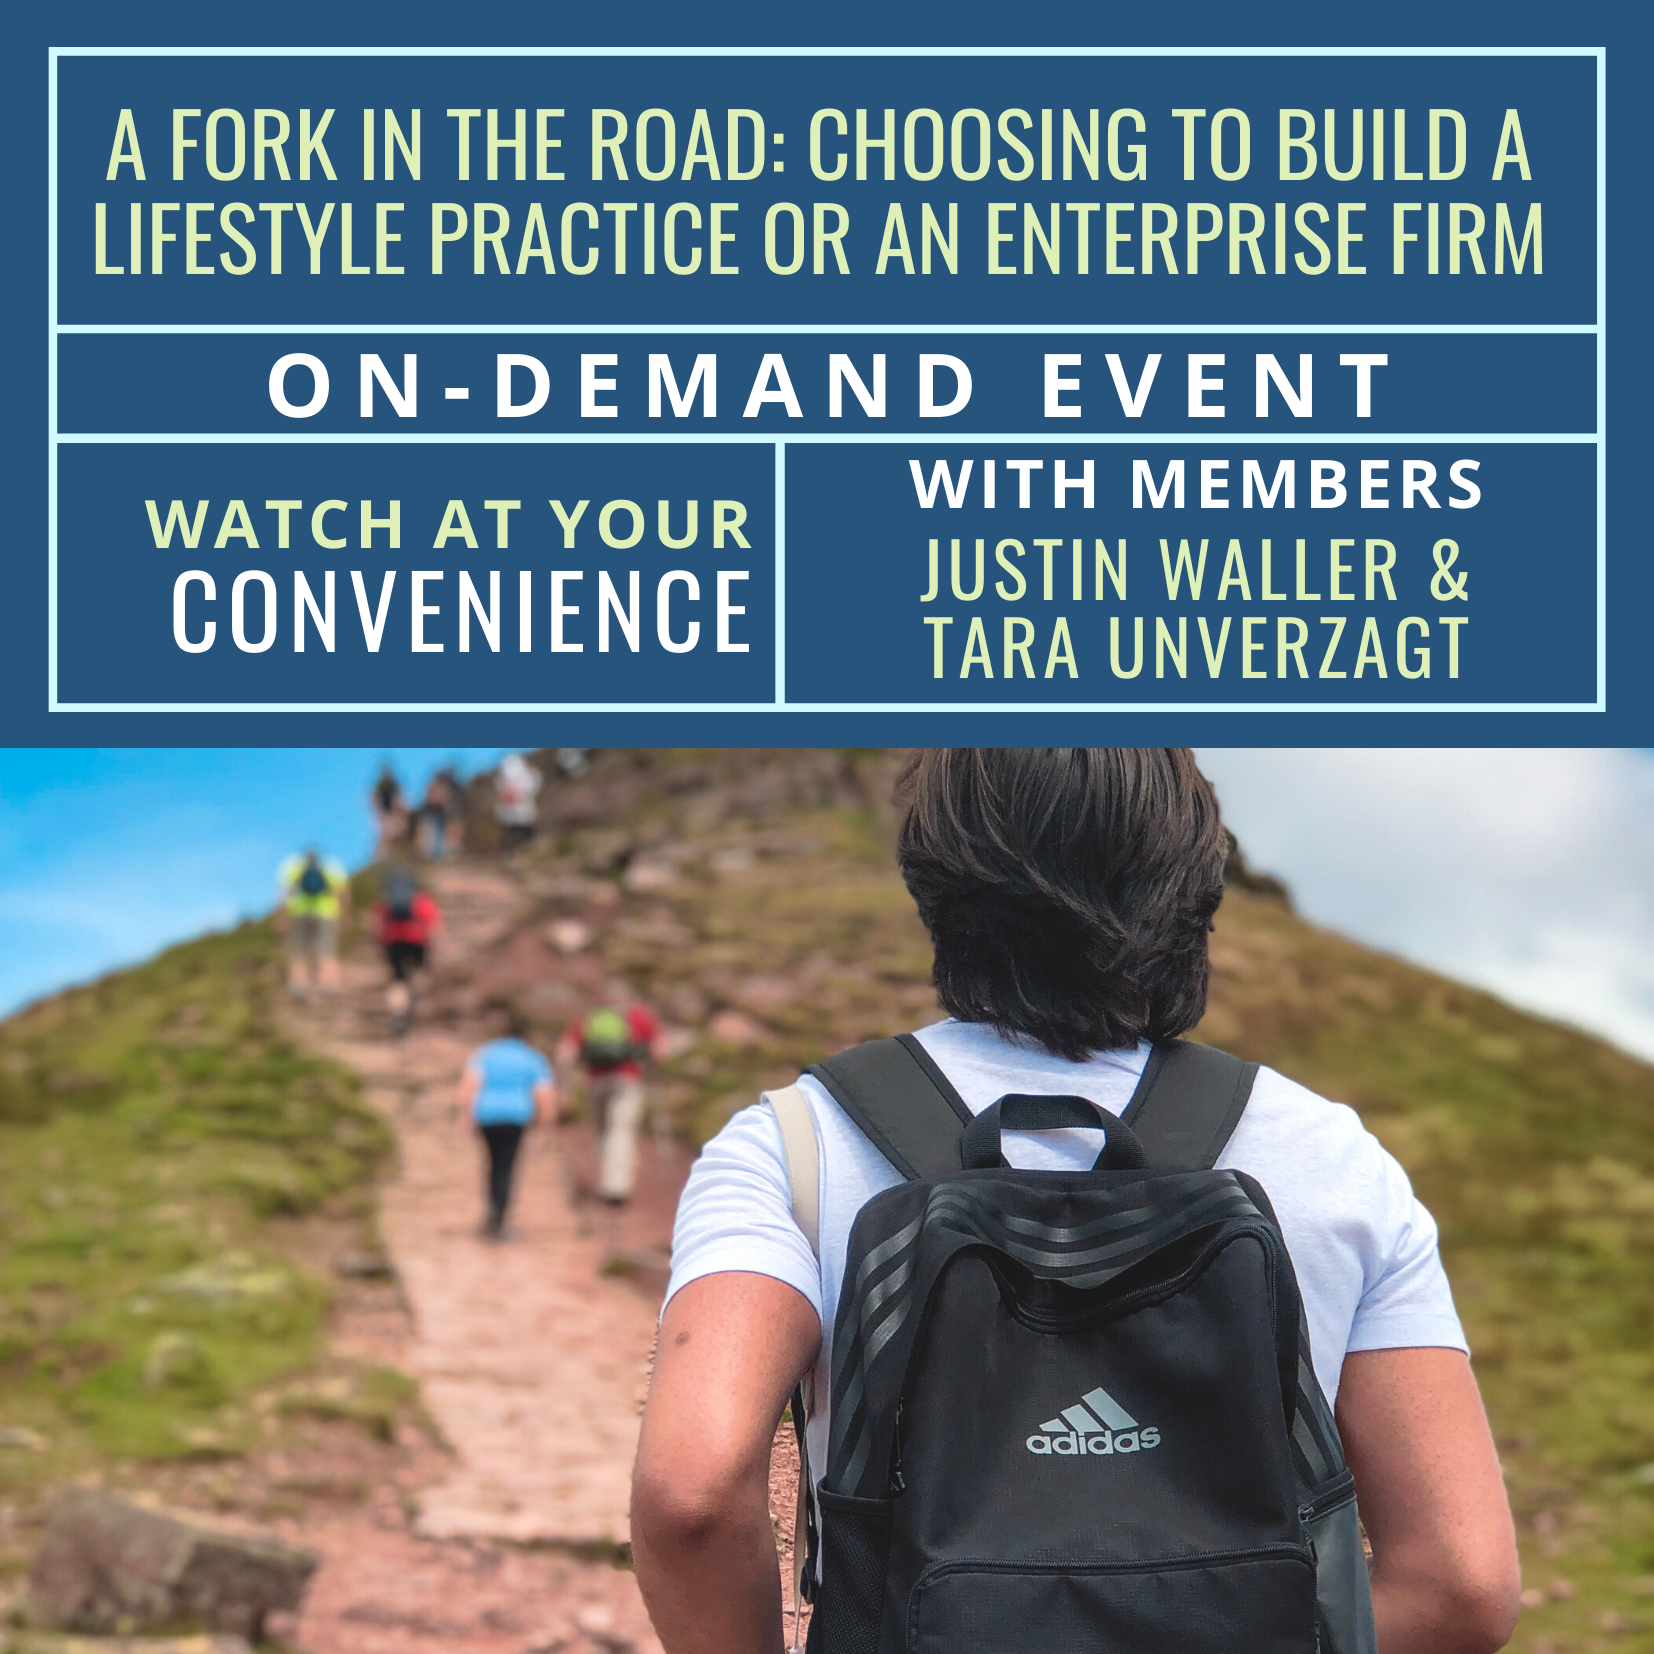 Free On-Demand Event: A Fork in the Road: Choosing to Build a Lifestyle Practice or an Enterprise Firm